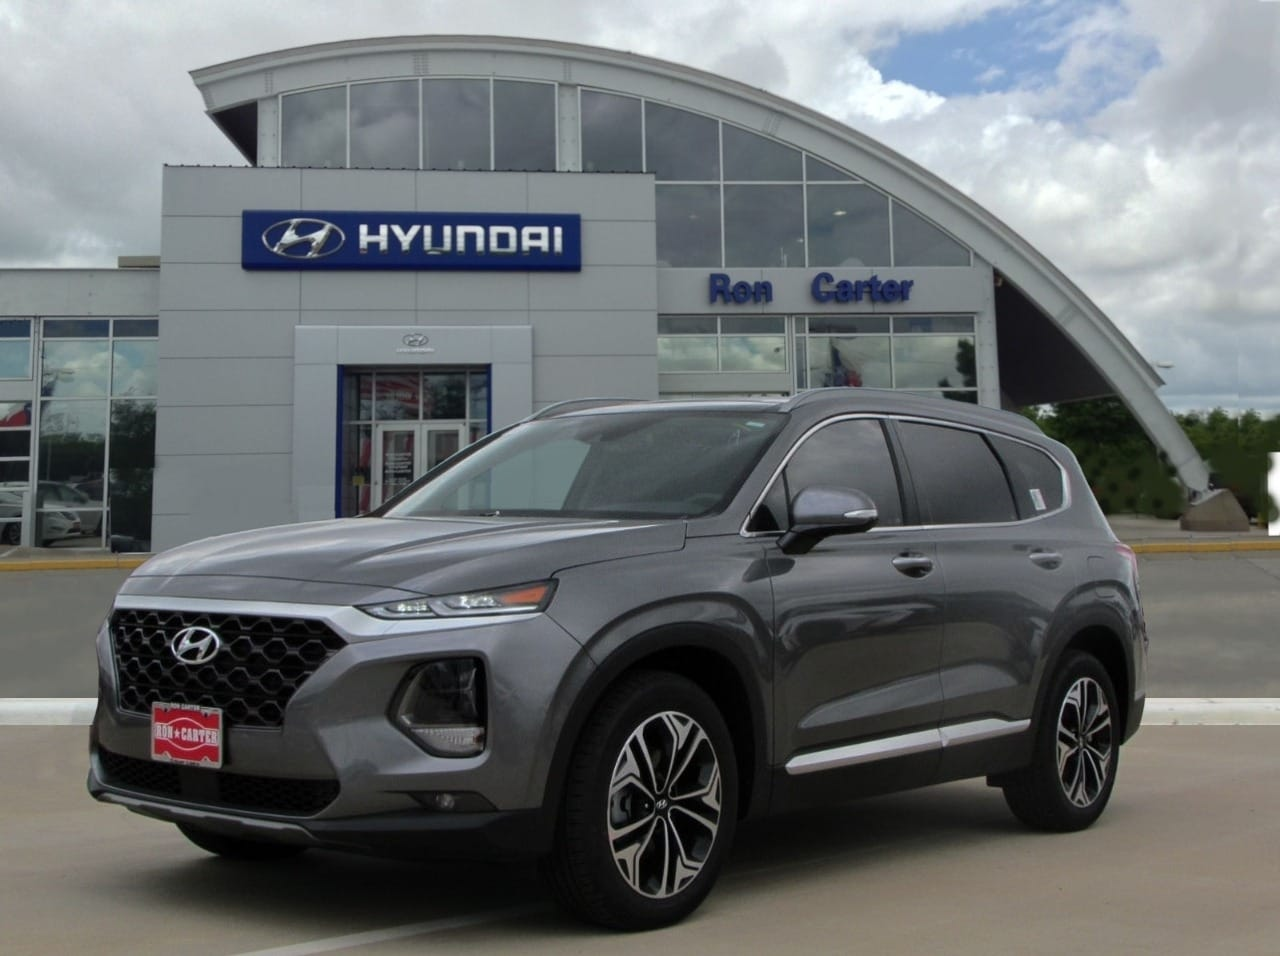 Ron Carter Hyundai >> New 2019 Hyundai Santa Fe For Sale At Ron Carter Hyundai Vin